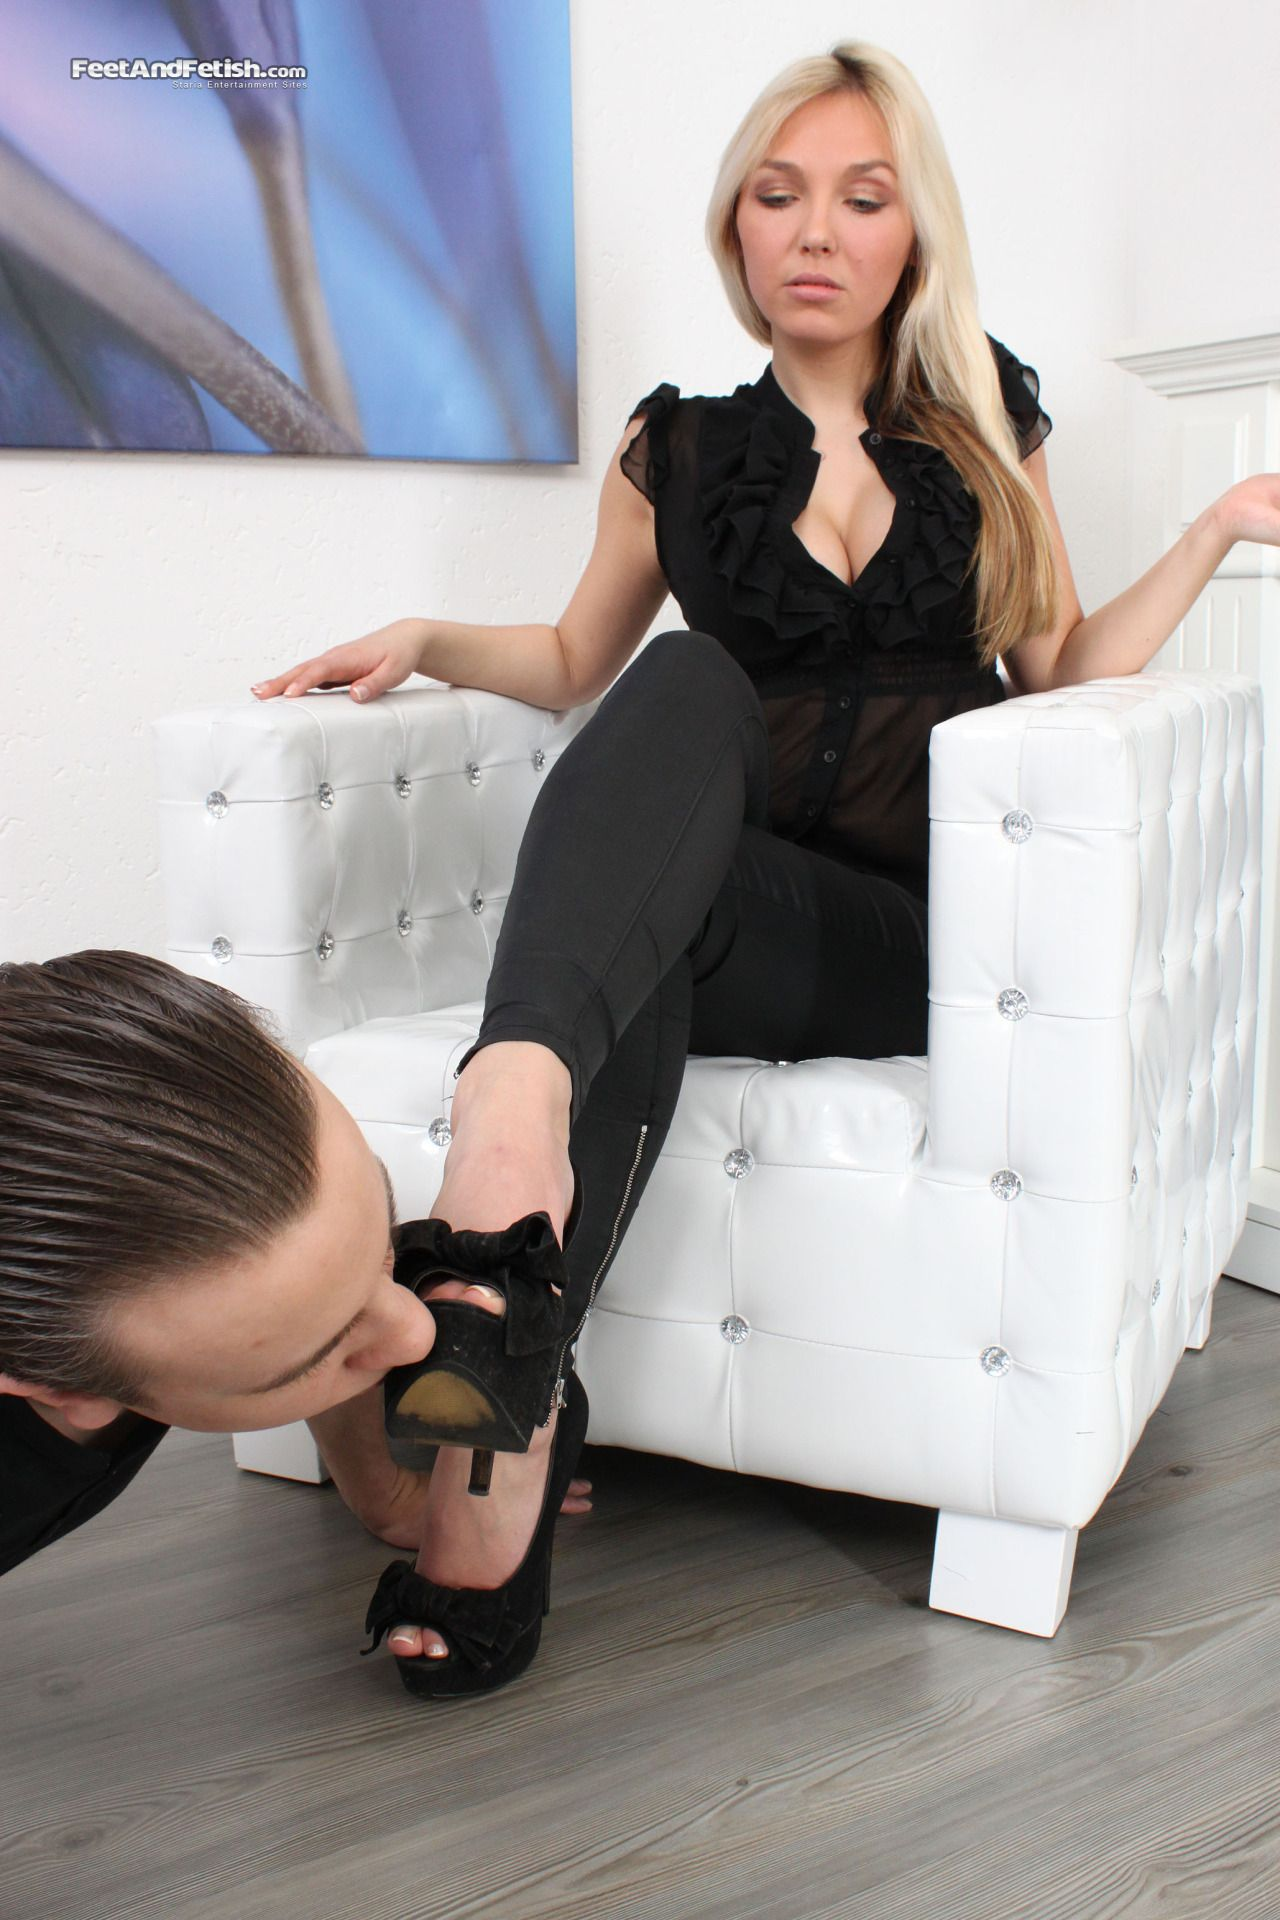 cfnm povidky foot fetish